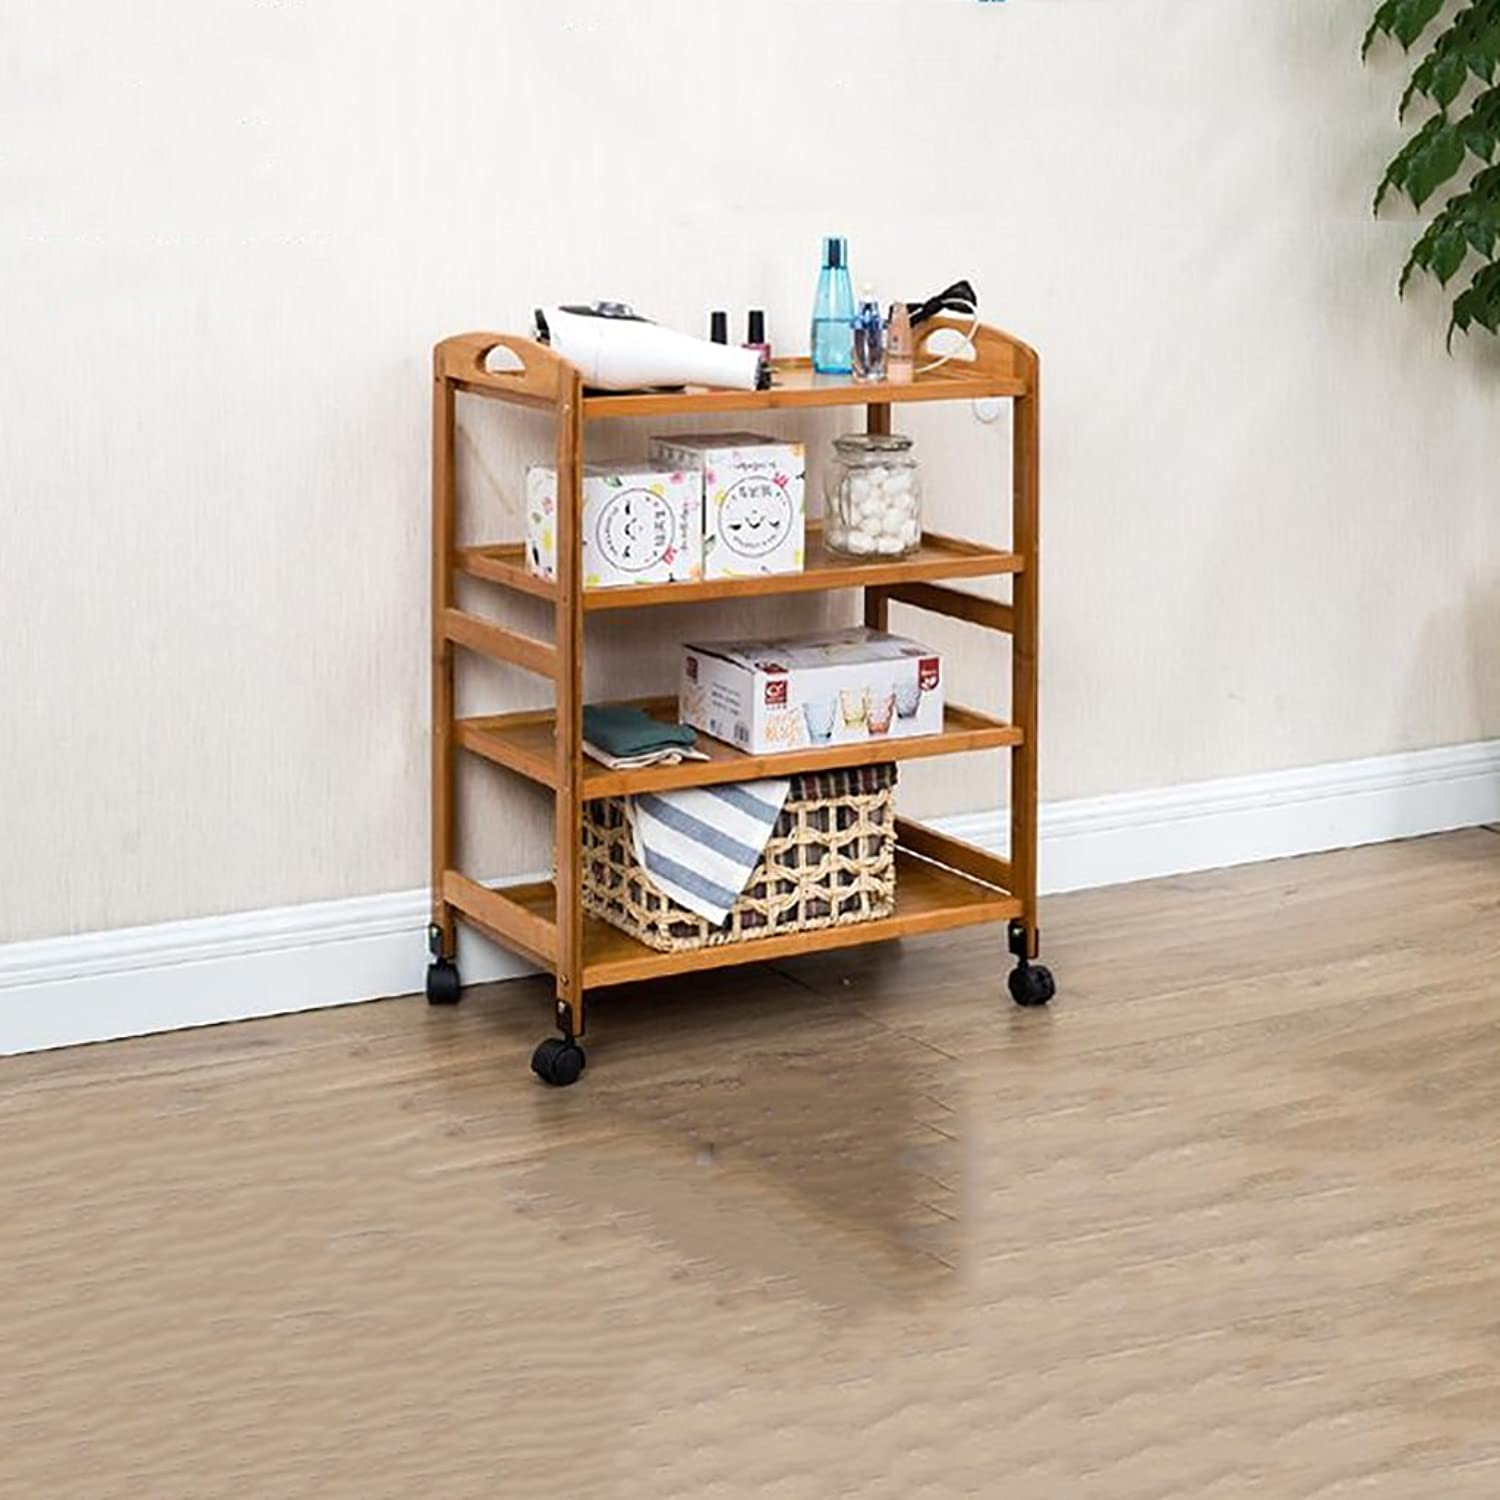 Kitchen Shelf All Purpose Shelving, Tier Serving Trolley,Wood Storage Units Kitchen Storage Racks (color   B)